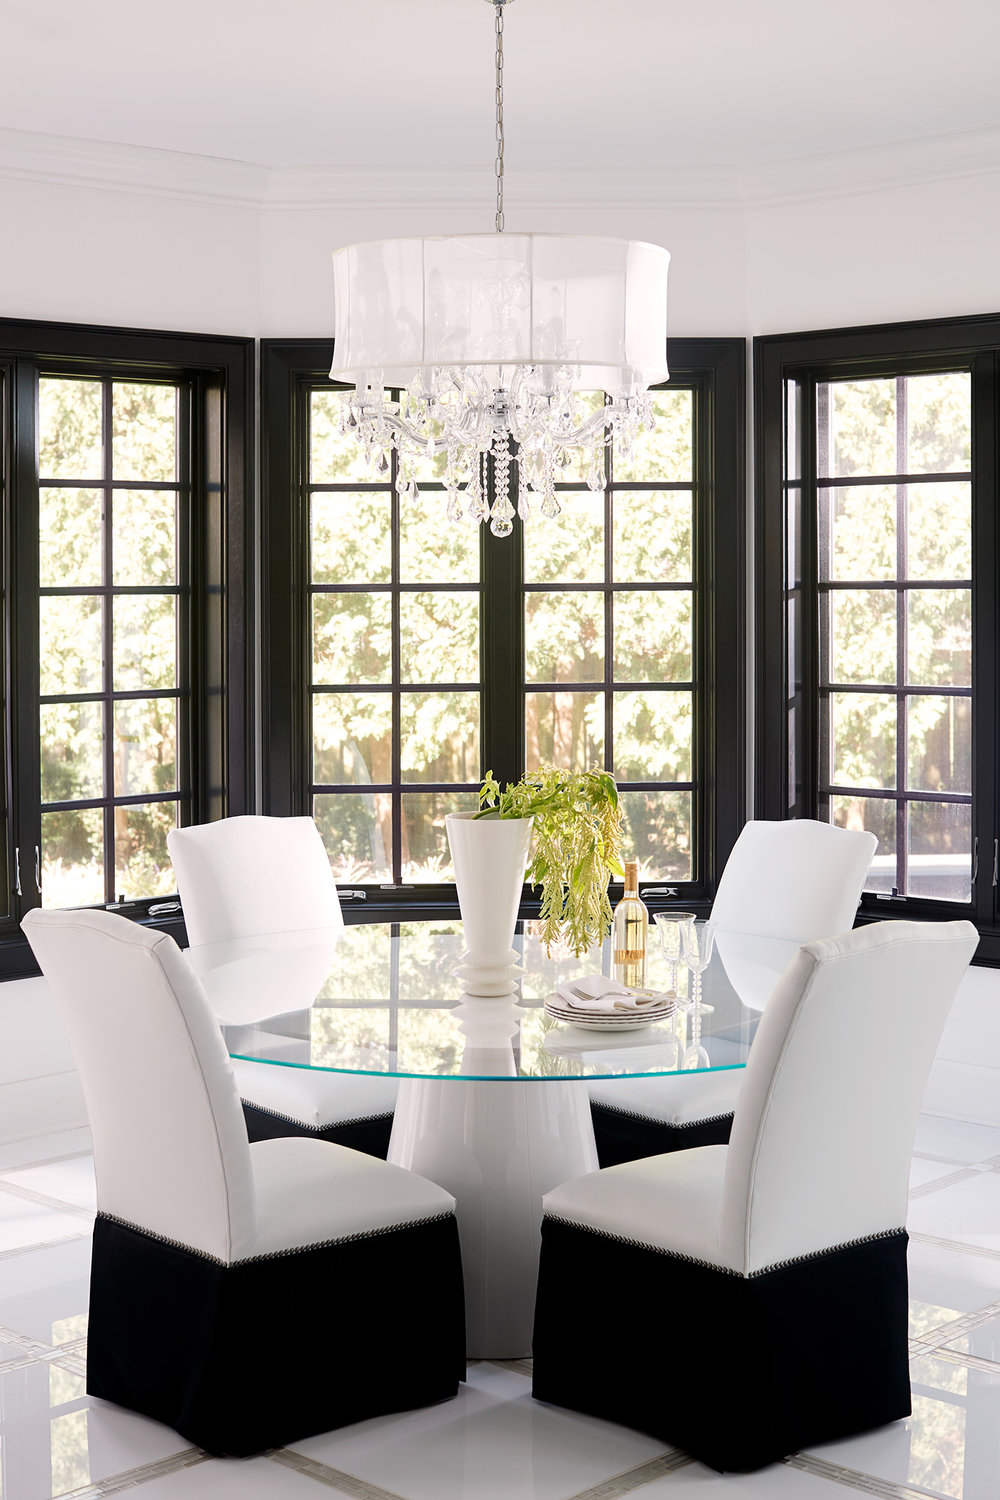 """<div class=""""gallerytitle"""">Bold Glamour<br><hr class=""""gallerydivider""""></div><div class=""""gallerydescription"""">Residential Design</div><br><div class=""""gallerybutton"""">VIEW</div>"""